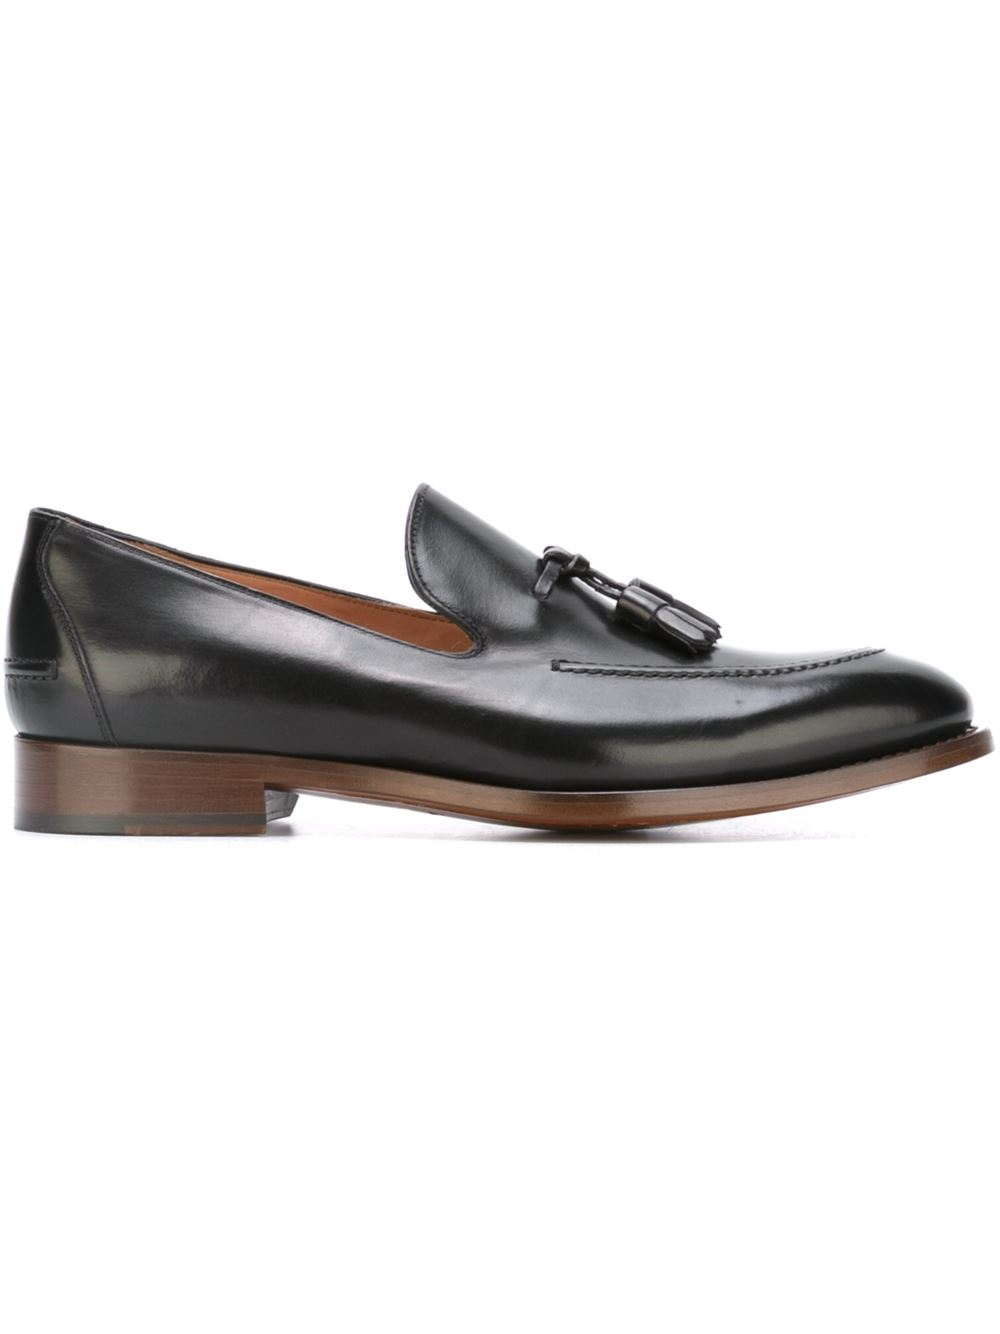 Paul Smith Black Driving Shoes